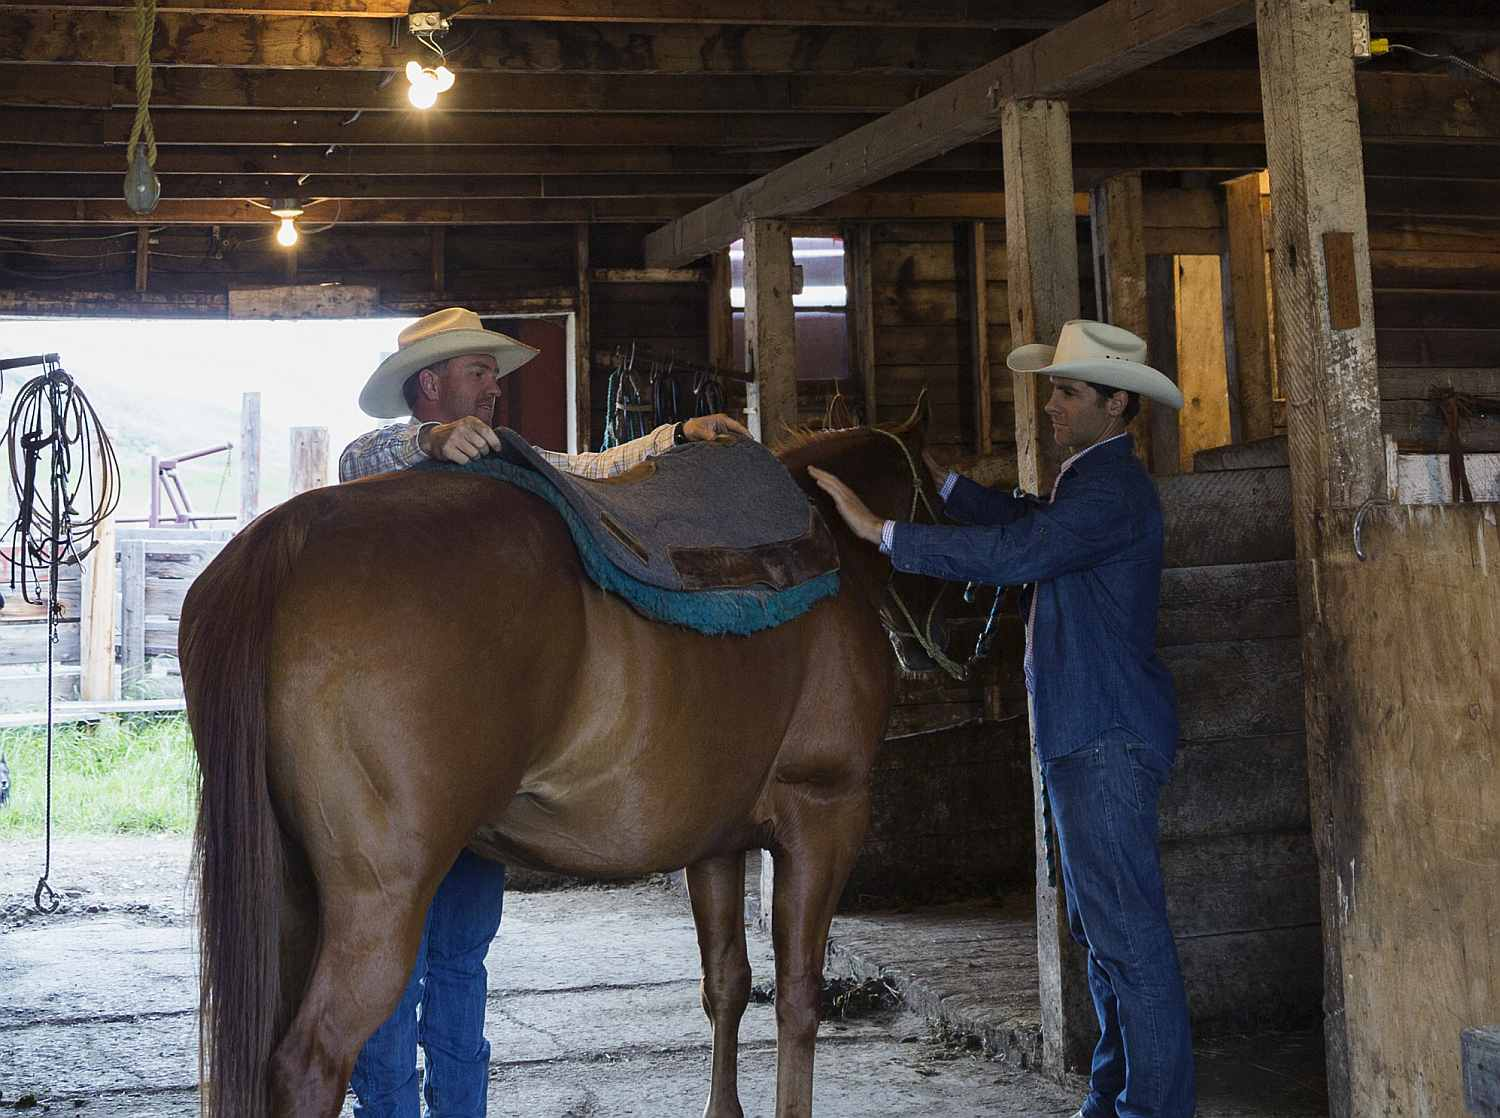 Smoothing out the saddle pads.